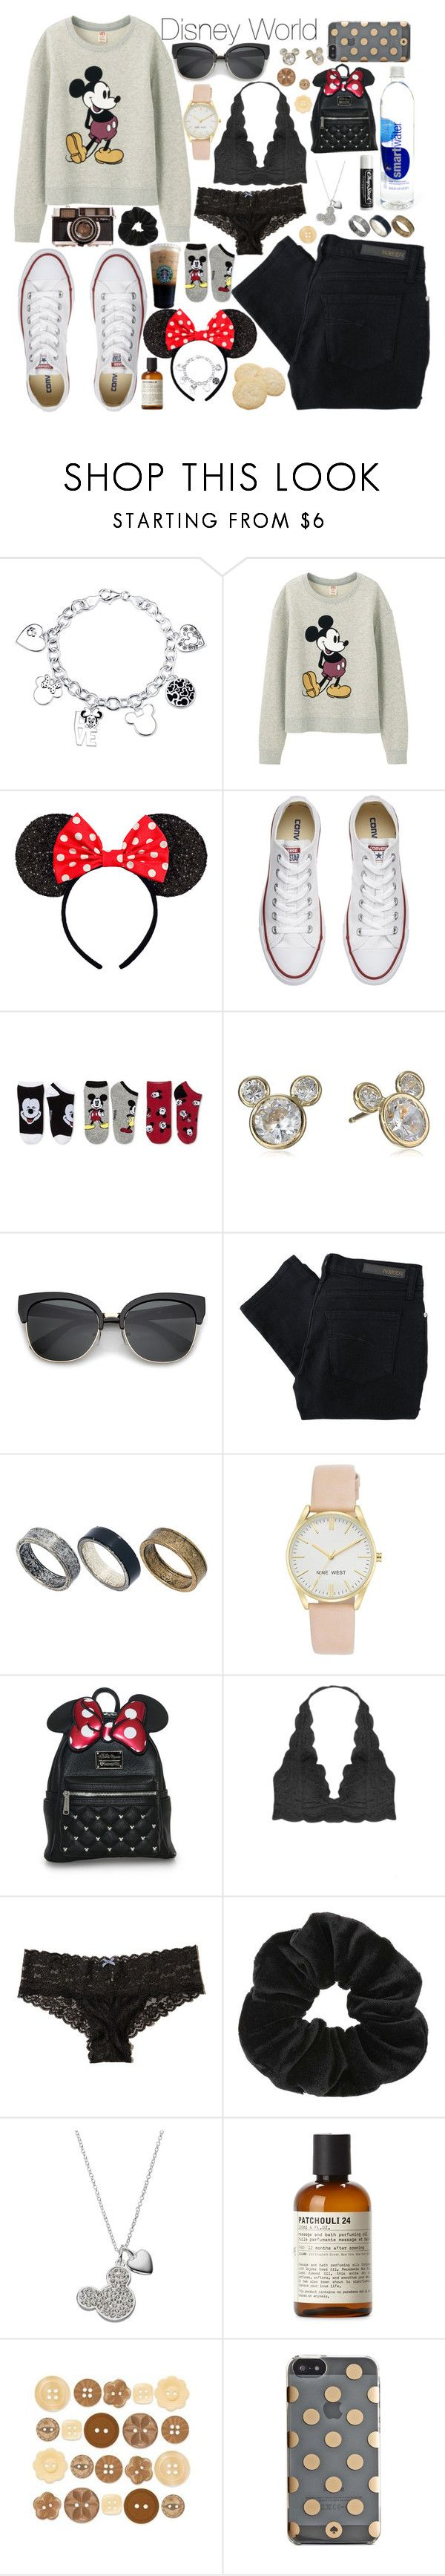 """""""Disney World Outfit 1"""" by gwynnieluree ❤ liked on Polyvore featuring Disney, Uniqlo, Converse, Nobody Denim, Just Acces, Nine West, Chapstick, Humble Chic, Hollister Co. and Miss Selfridge"""